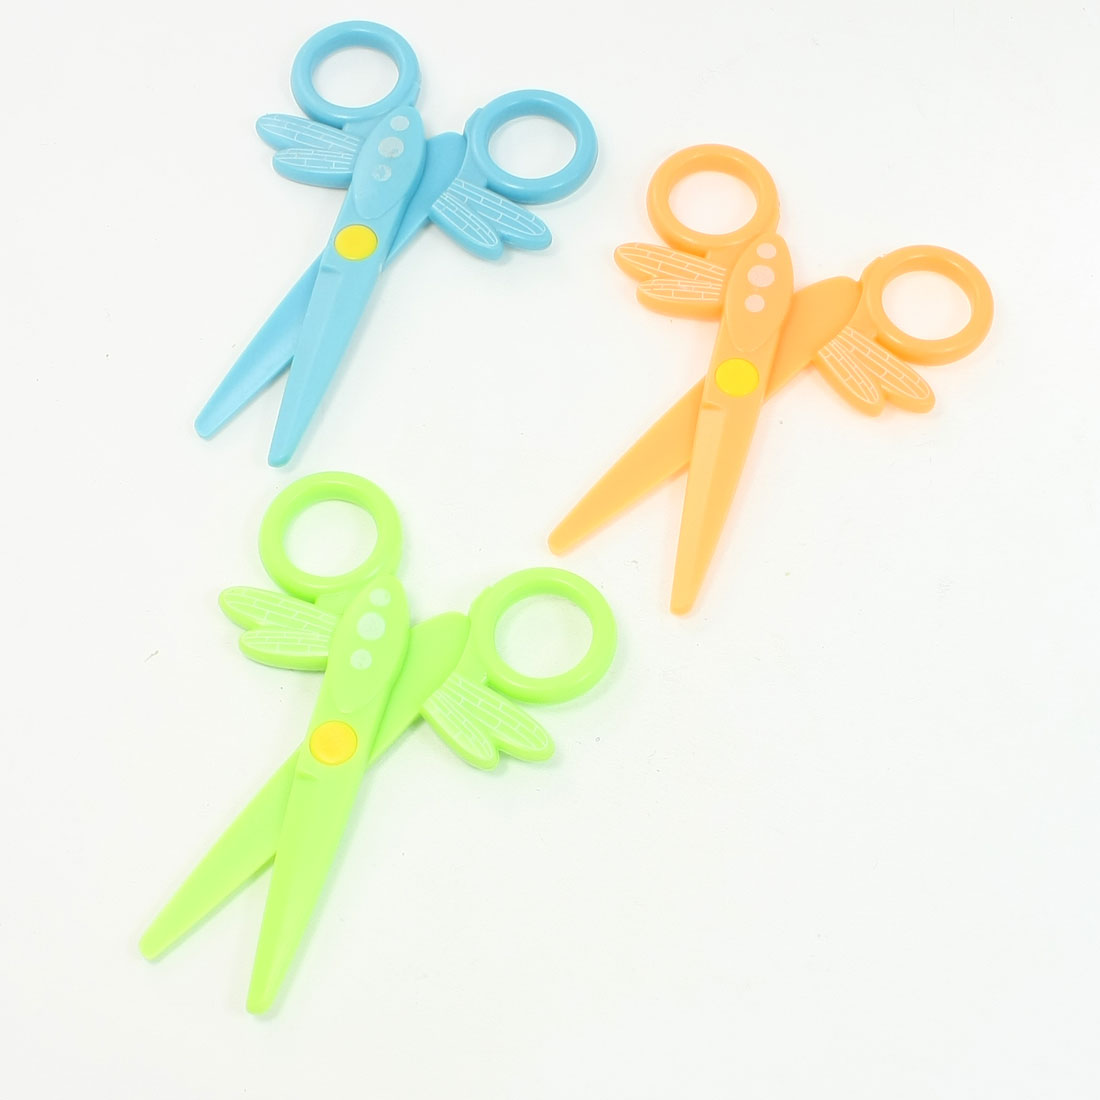 3 Pcs Whole Plastic Blunt Tip Stationery Scissors for Children